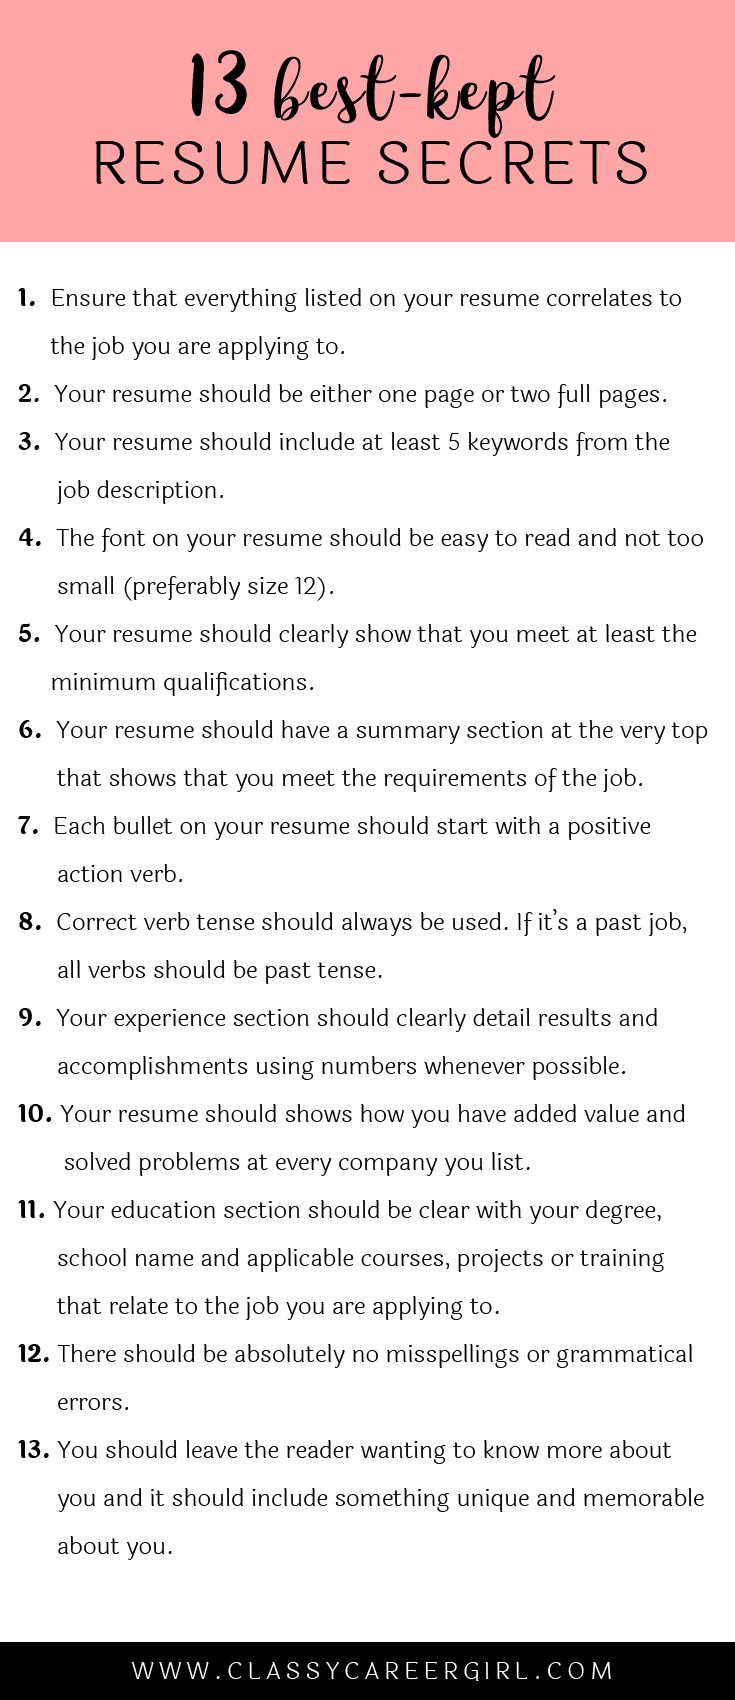 Opposenewapstandardsus  Unusual  Ideas About Resume On Pinterest  Cv Format Resume Cv And  With Extraordinary Some Hiring Managers Will Toss Your Resume Out If You Dont Know These  With Astonishing Maintenance Tech Resume Also Medical Device Resume In Addition Reference Page For Resume Template And Public Relations Resume Objective As Well As Job Resume Layout Additionally President Resume From Pinterestcom With Opposenewapstandardsus  Extraordinary  Ideas About Resume On Pinterest  Cv Format Resume Cv And  With Astonishing Some Hiring Managers Will Toss Your Resume Out If You Dont Know These  And Unusual Maintenance Tech Resume Also Medical Device Resume In Addition Reference Page For Resume Template From Pinterestcom